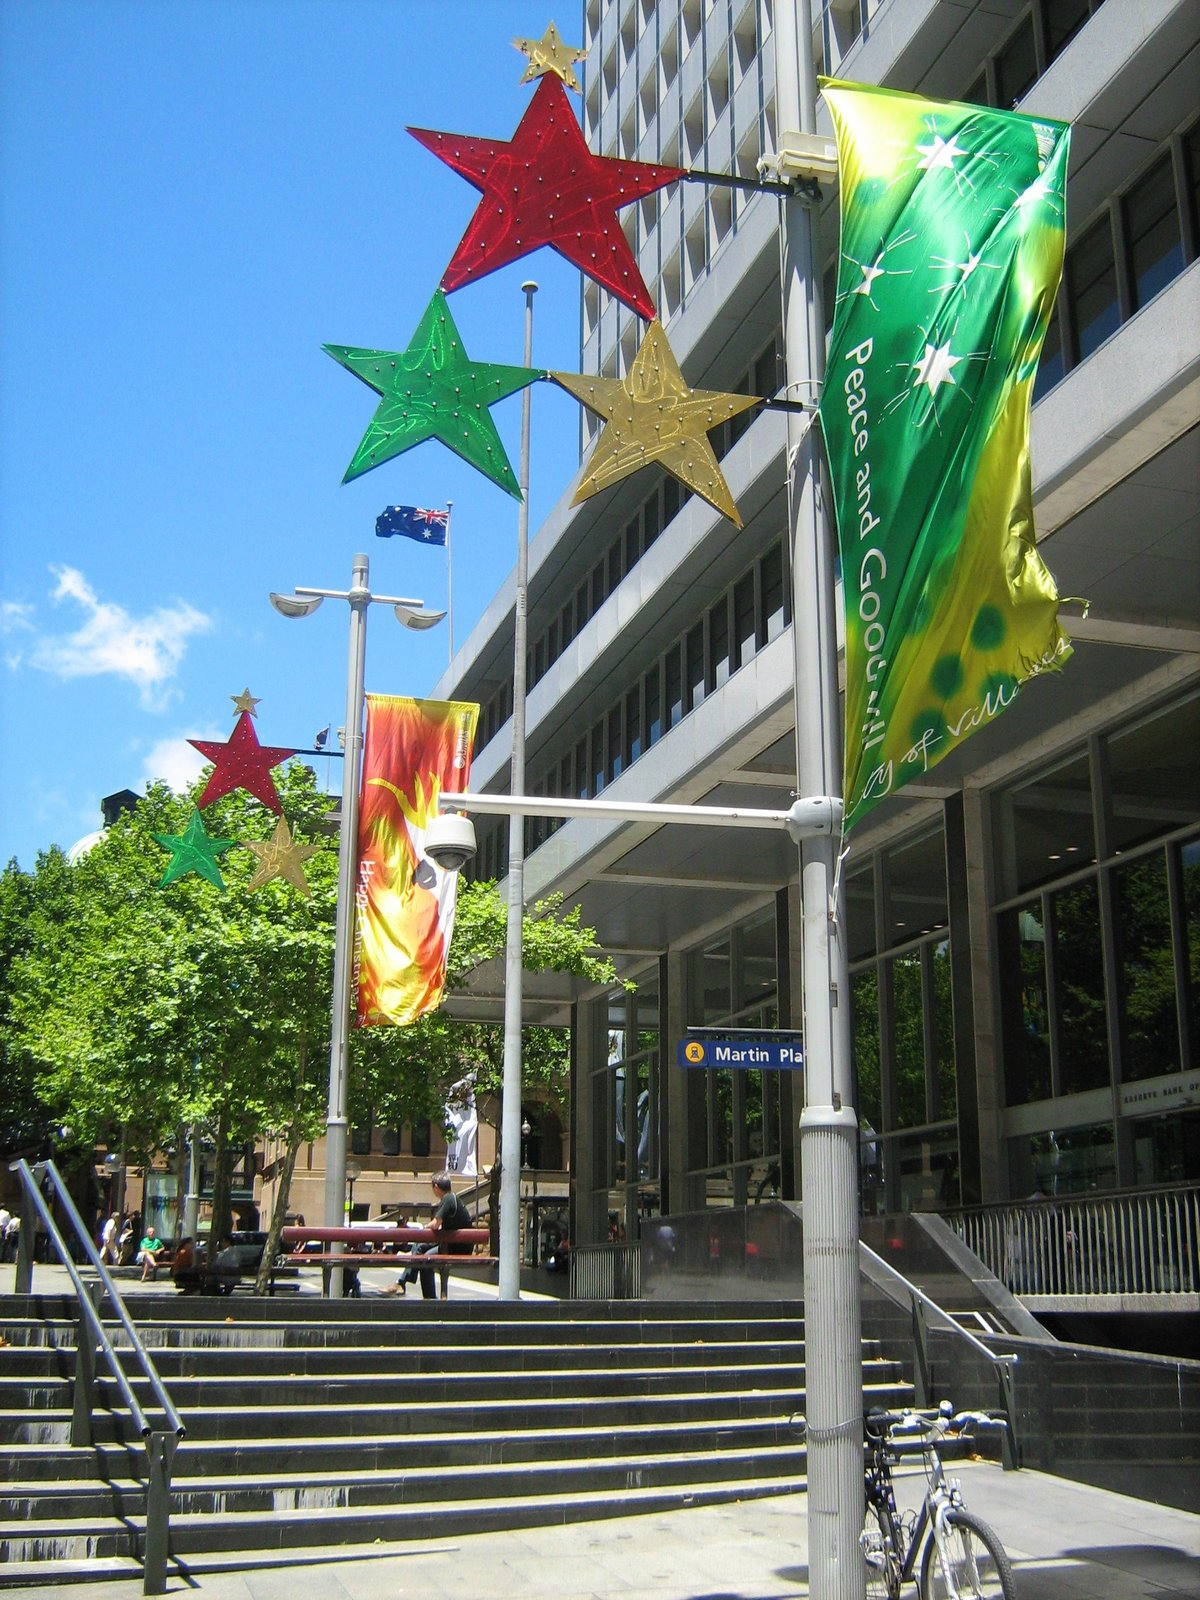 Christmas Decorations Sydney Sydney City And Suburbs Martin Place Christmas Decorations